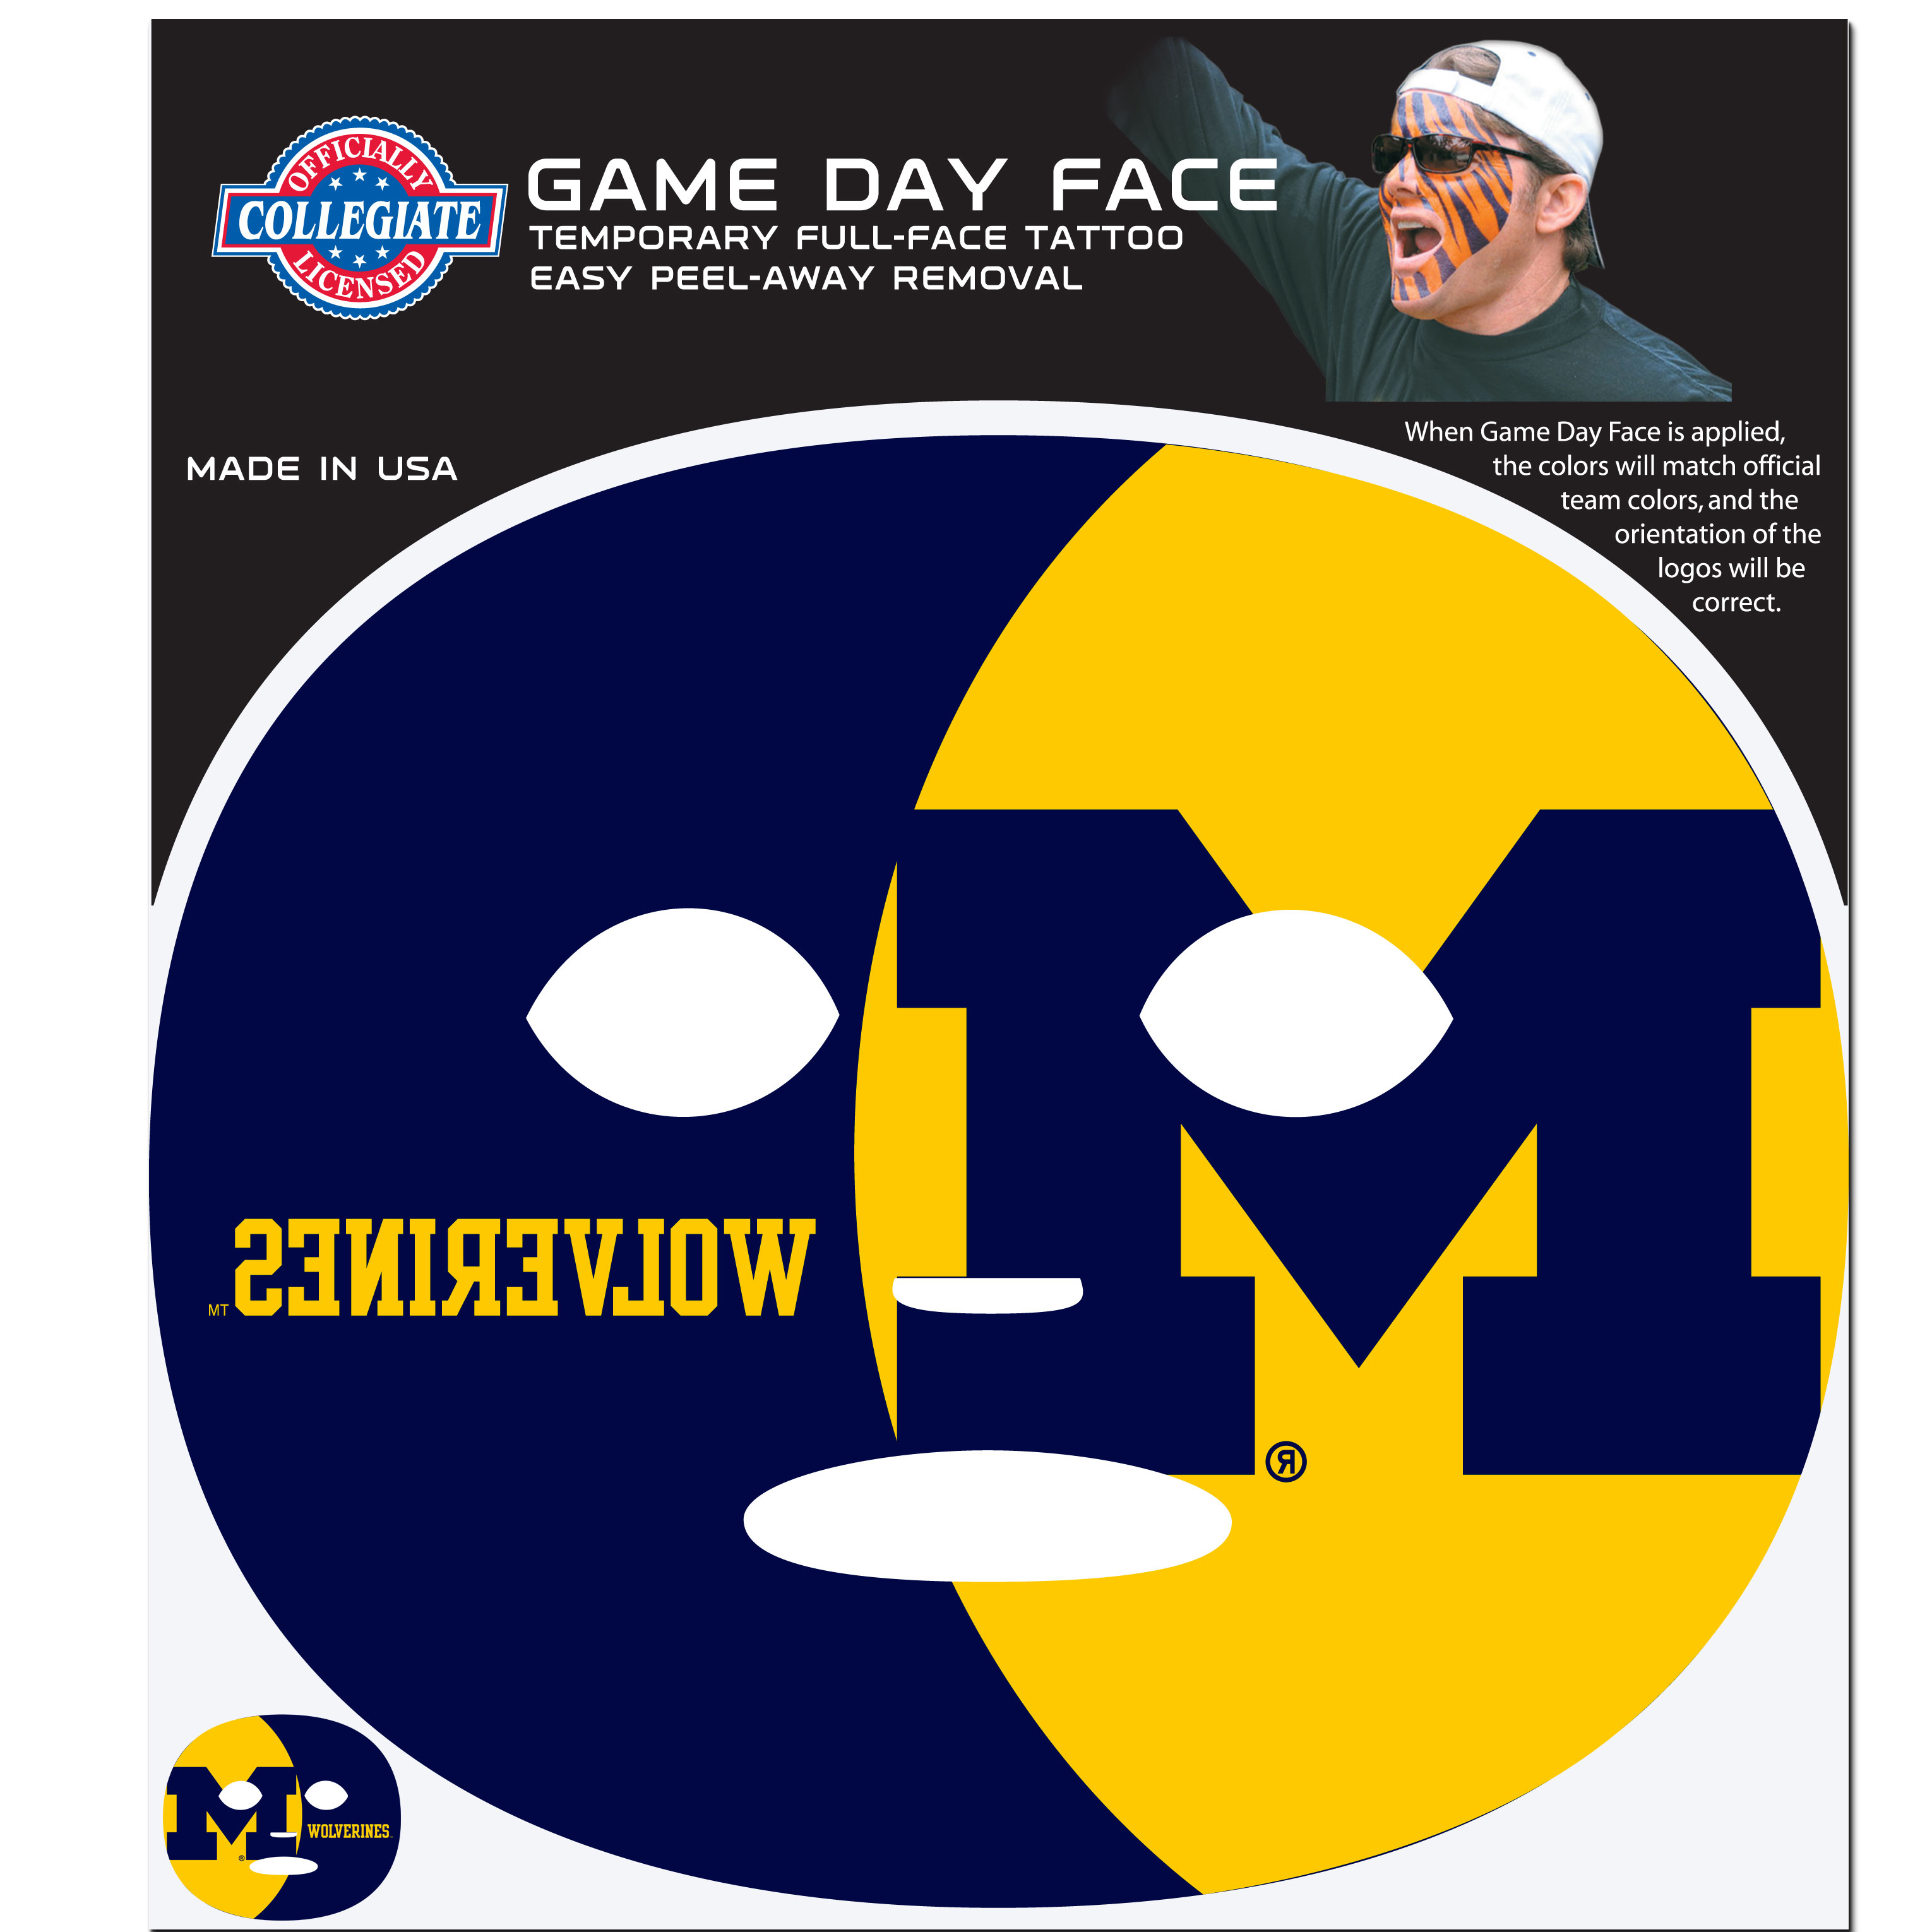 Michigan Wolverines Game Face Temporary Tattoo - No better way to show your Michigan Wolverines pride than by painting your face. Siskiyou's Game Day Face Temporary Tattoo isn't your typical face paint. It is a water based application that doesn't smudge, smear or sweat off  while you're wearing it and easily peels off after you're done celebrating your team's big Win! The temporary tattoo is large enough to trim down to fit your face.  Our Game Day Face Temporary Tattoo's are fun for fans of all ages. You may have seen our product before,  these are the same Temporary Face Tattoos as pitched on ABC's Shark Tank.